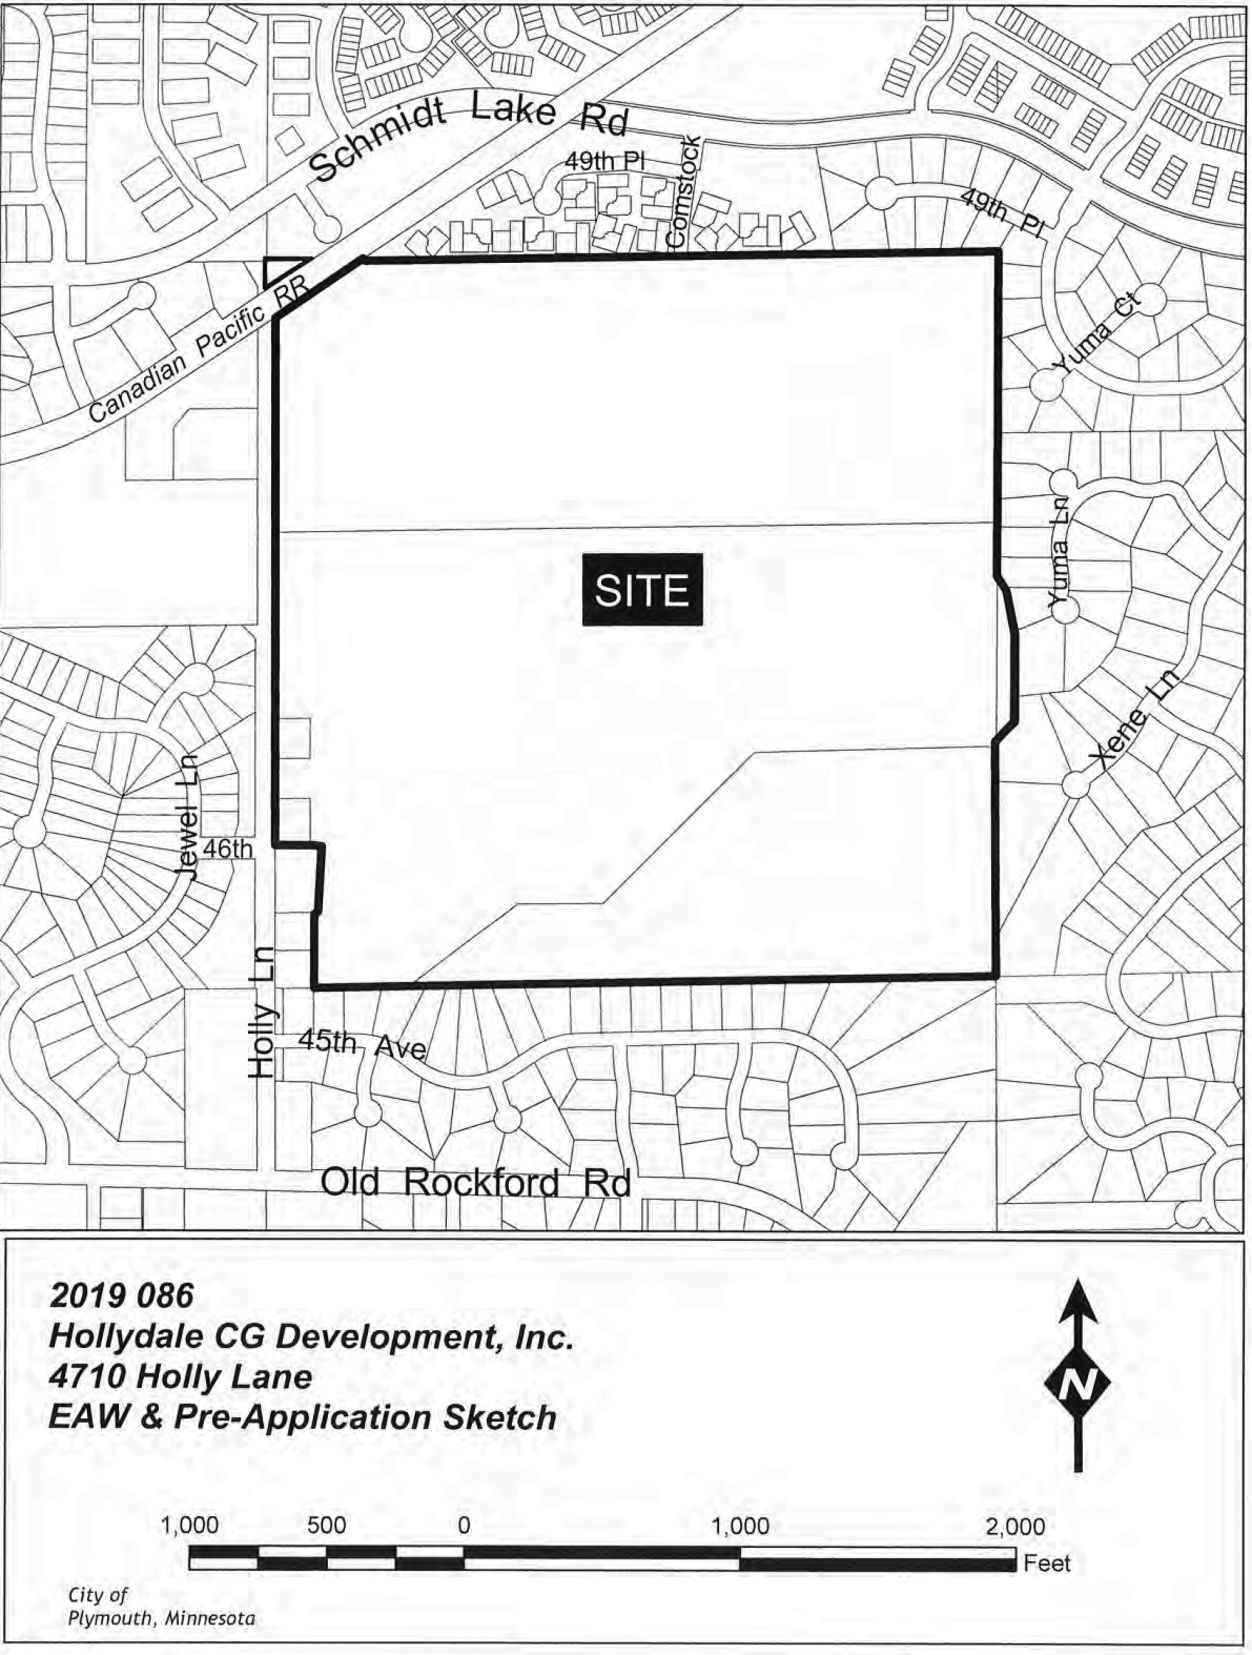 Hollydale proposal